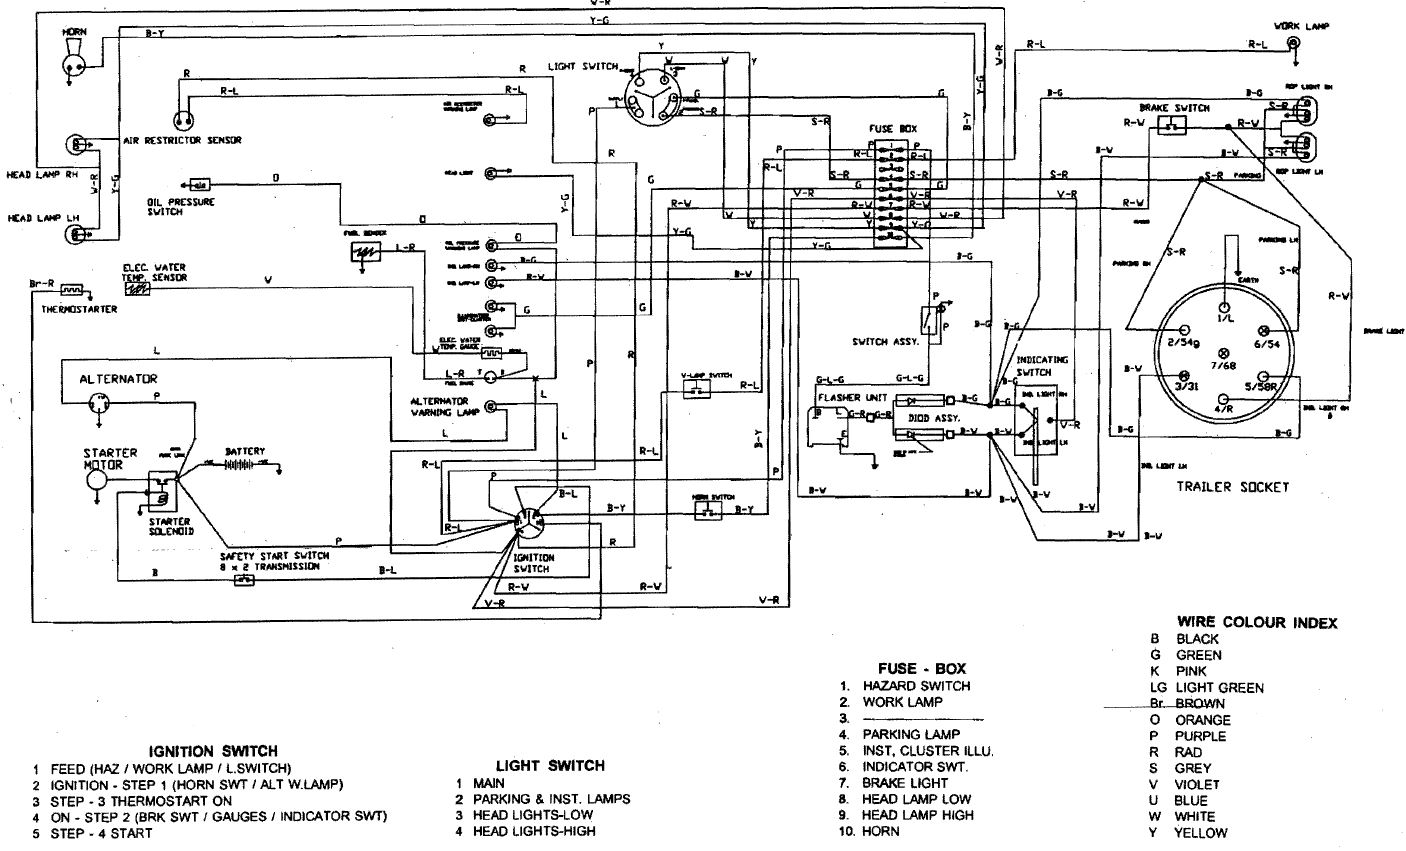 hight resolution of jd 1020 wiring diagram wiring diagram schematics ih 606 wiring diagram jd 1020 wiring diagram